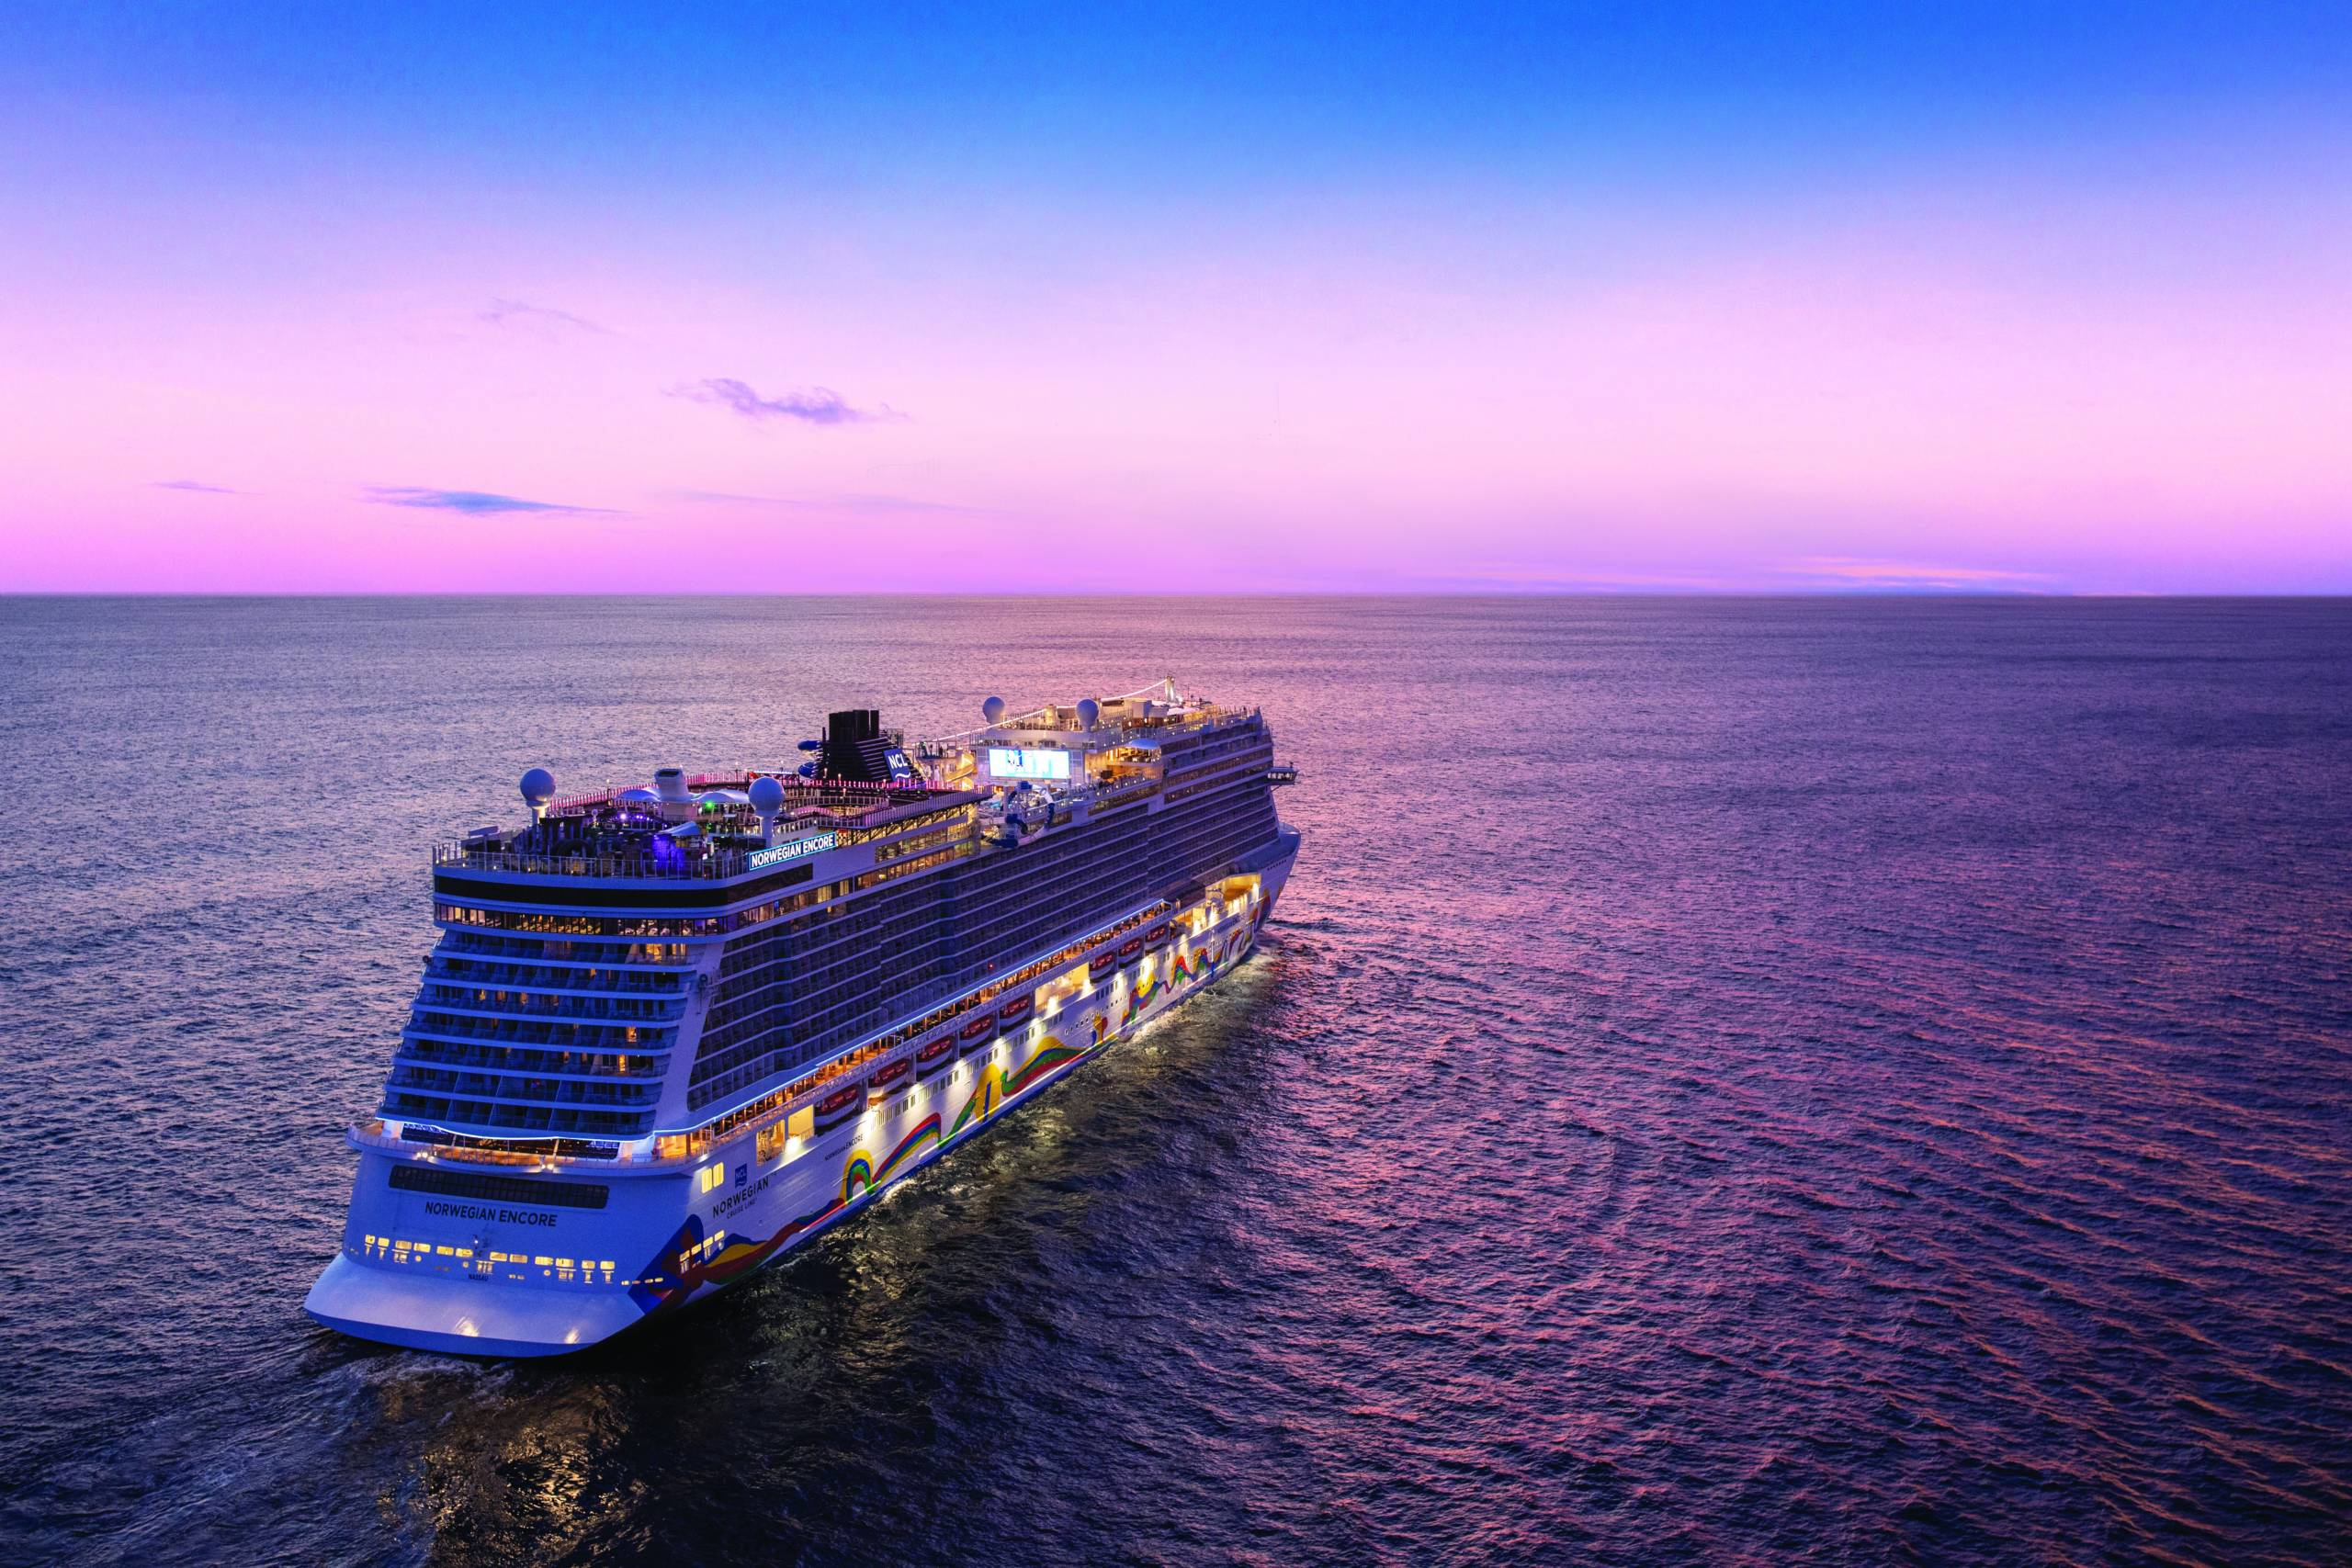 A beginner's guide to picking a cruise line